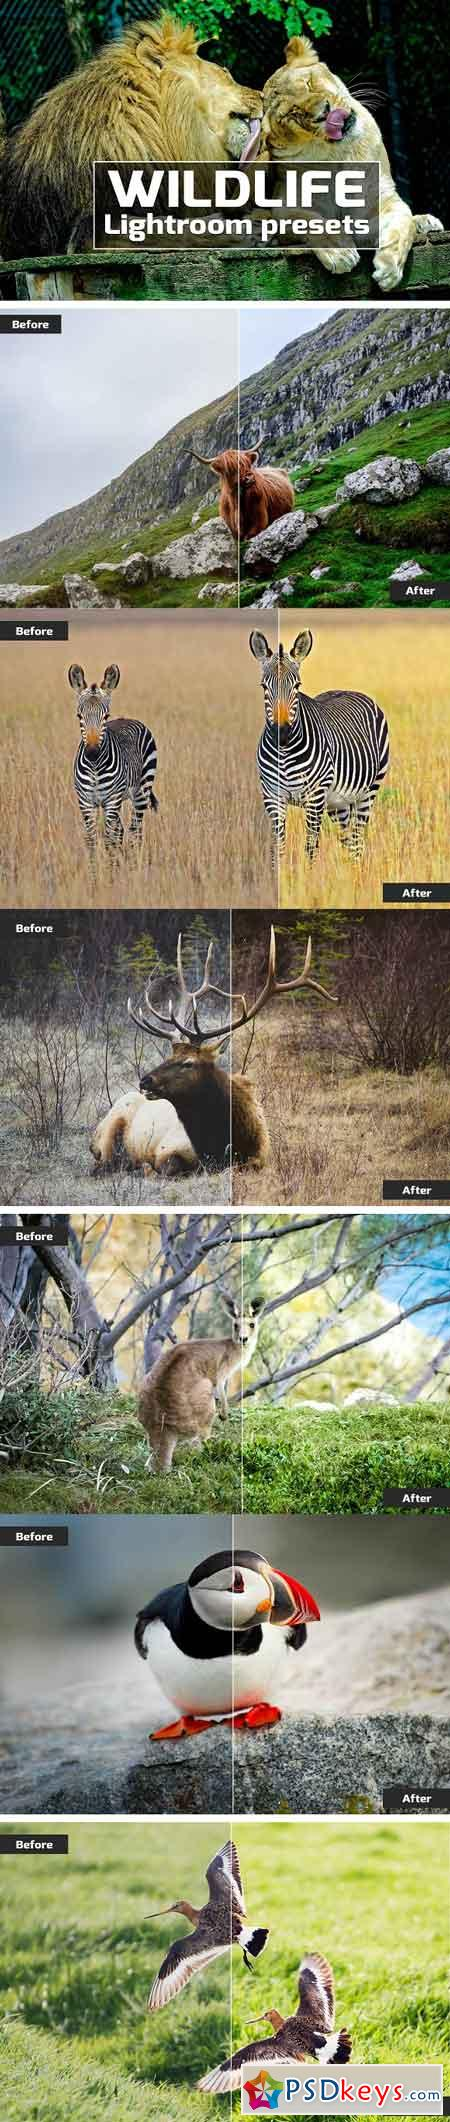 Wildlife Lightroom Presets 2538578